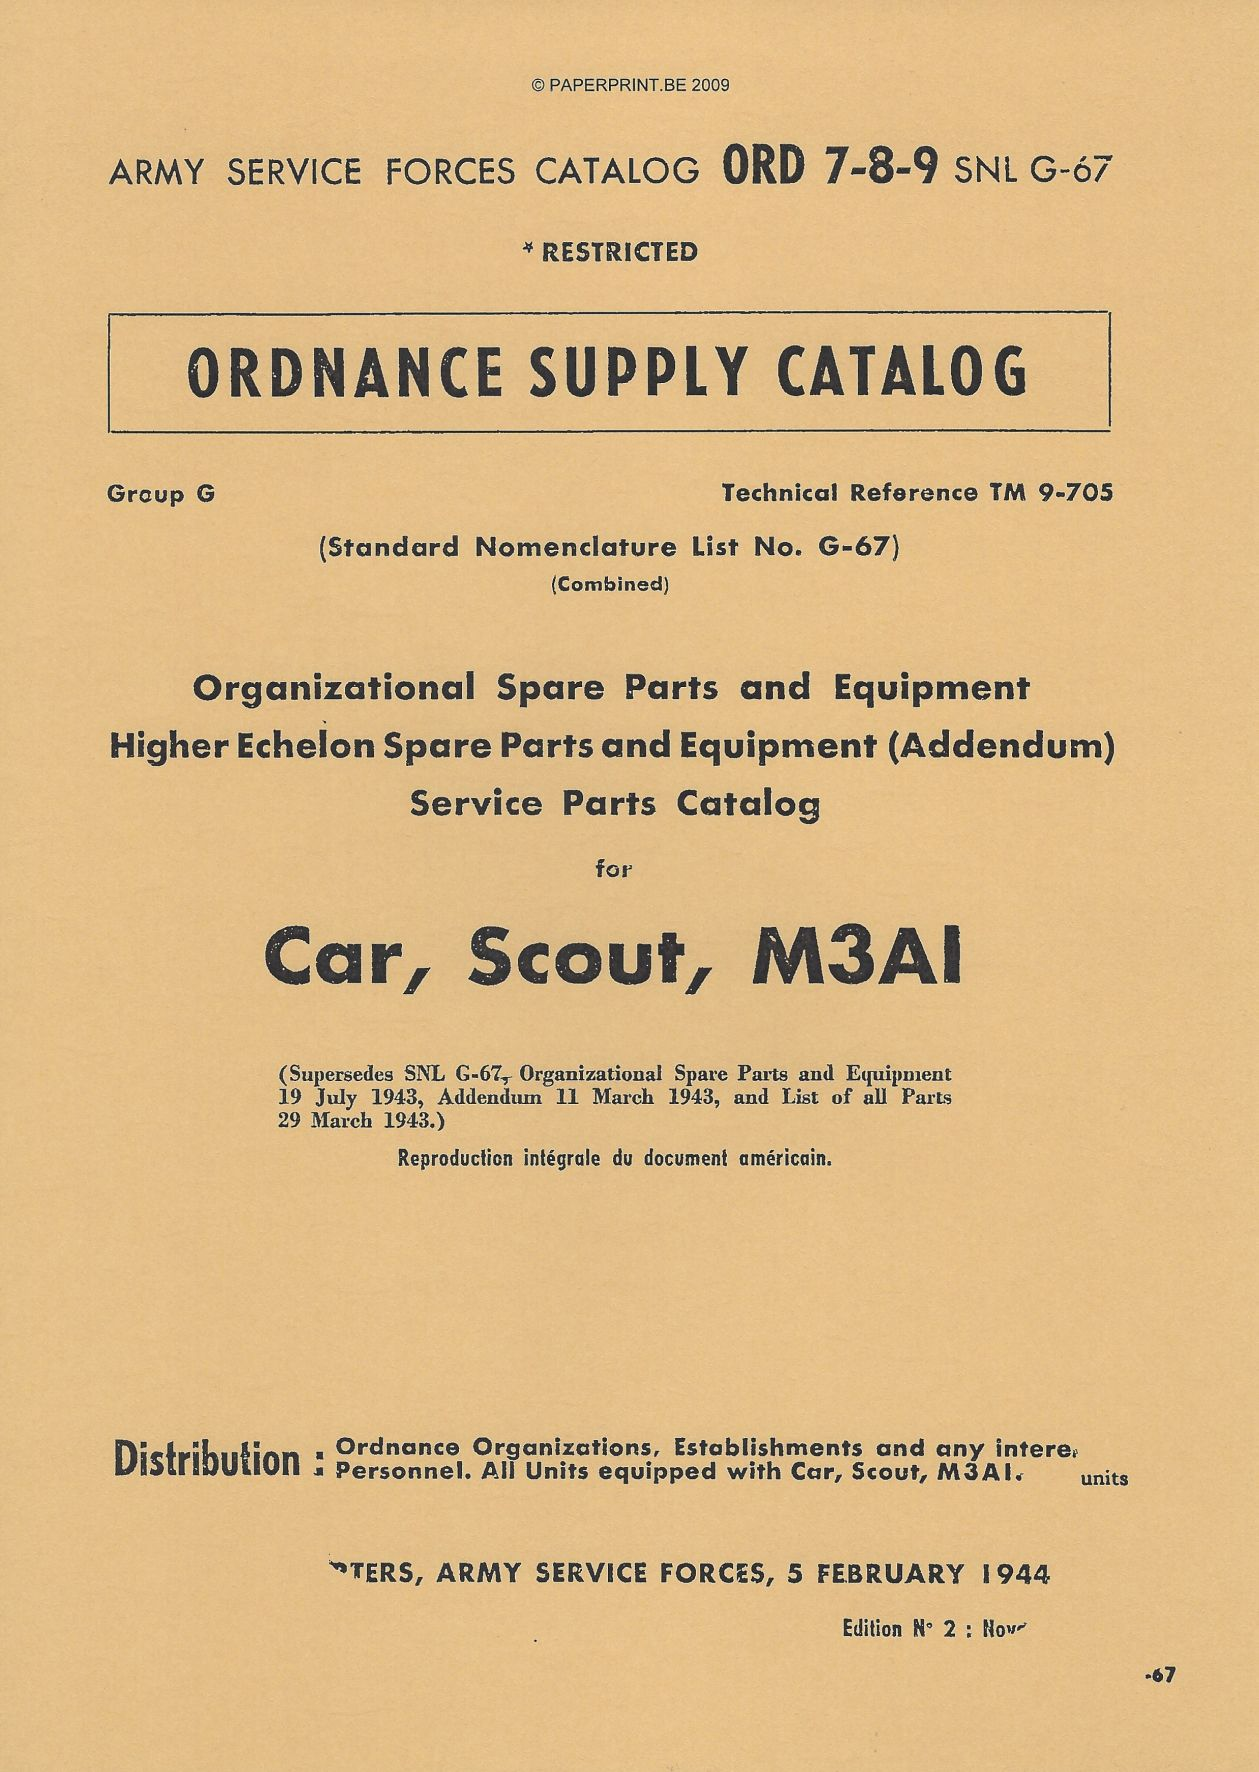 SNL G-67 US SERVICE PARTS CATALOG FOR CAR, SCOUT, M3A1